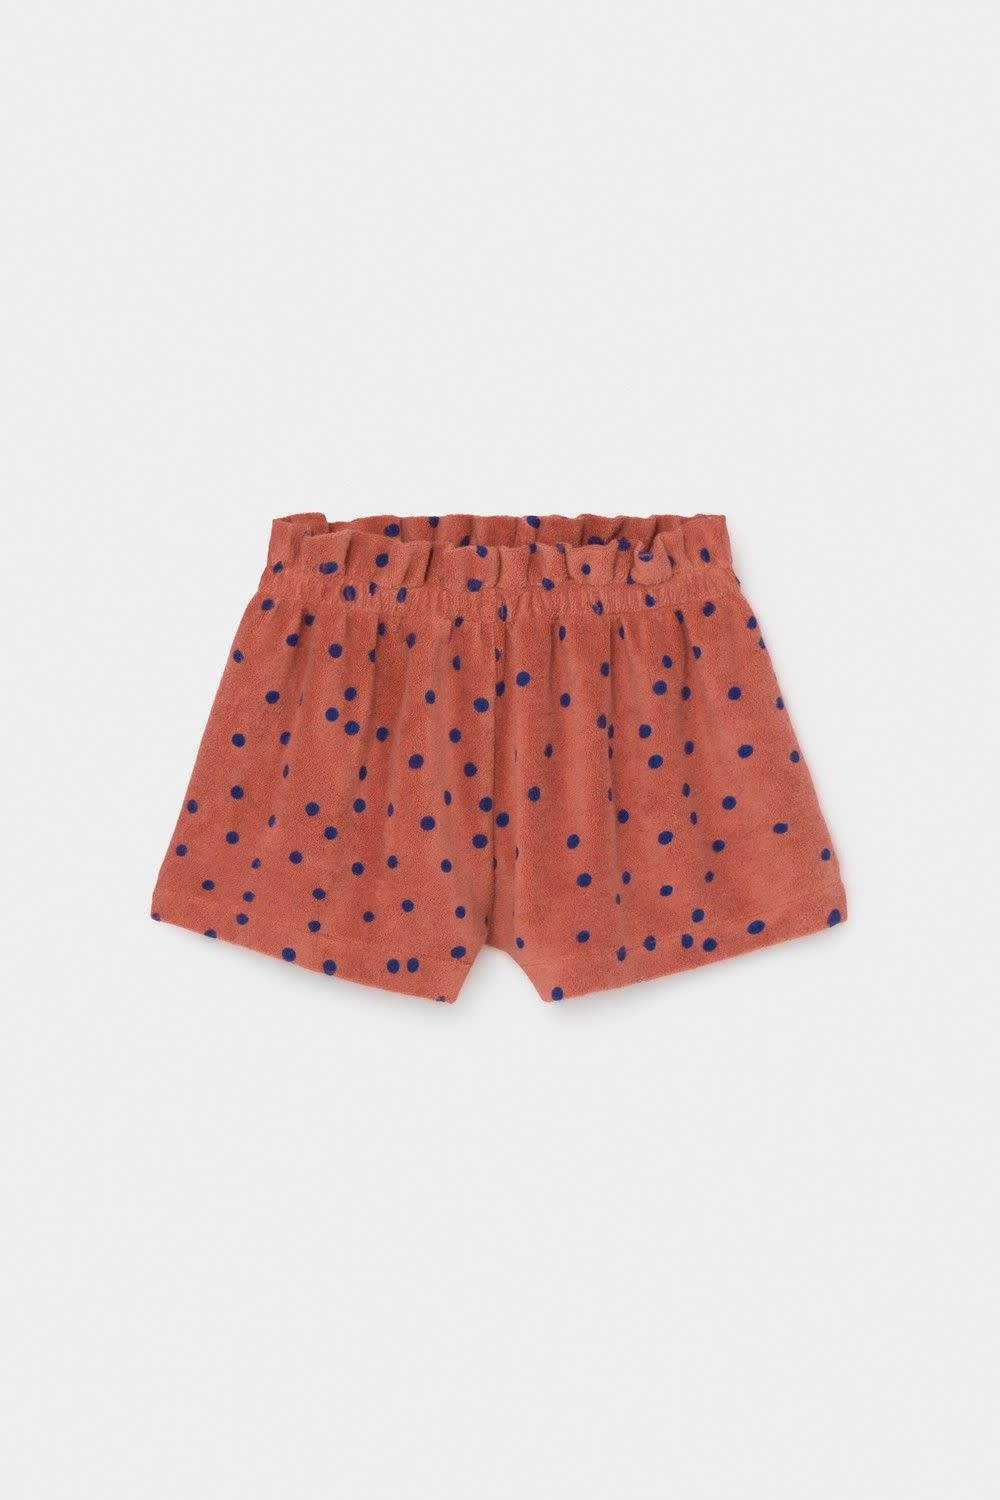 BOBO CHOSES Dots Terry Towel Shorts